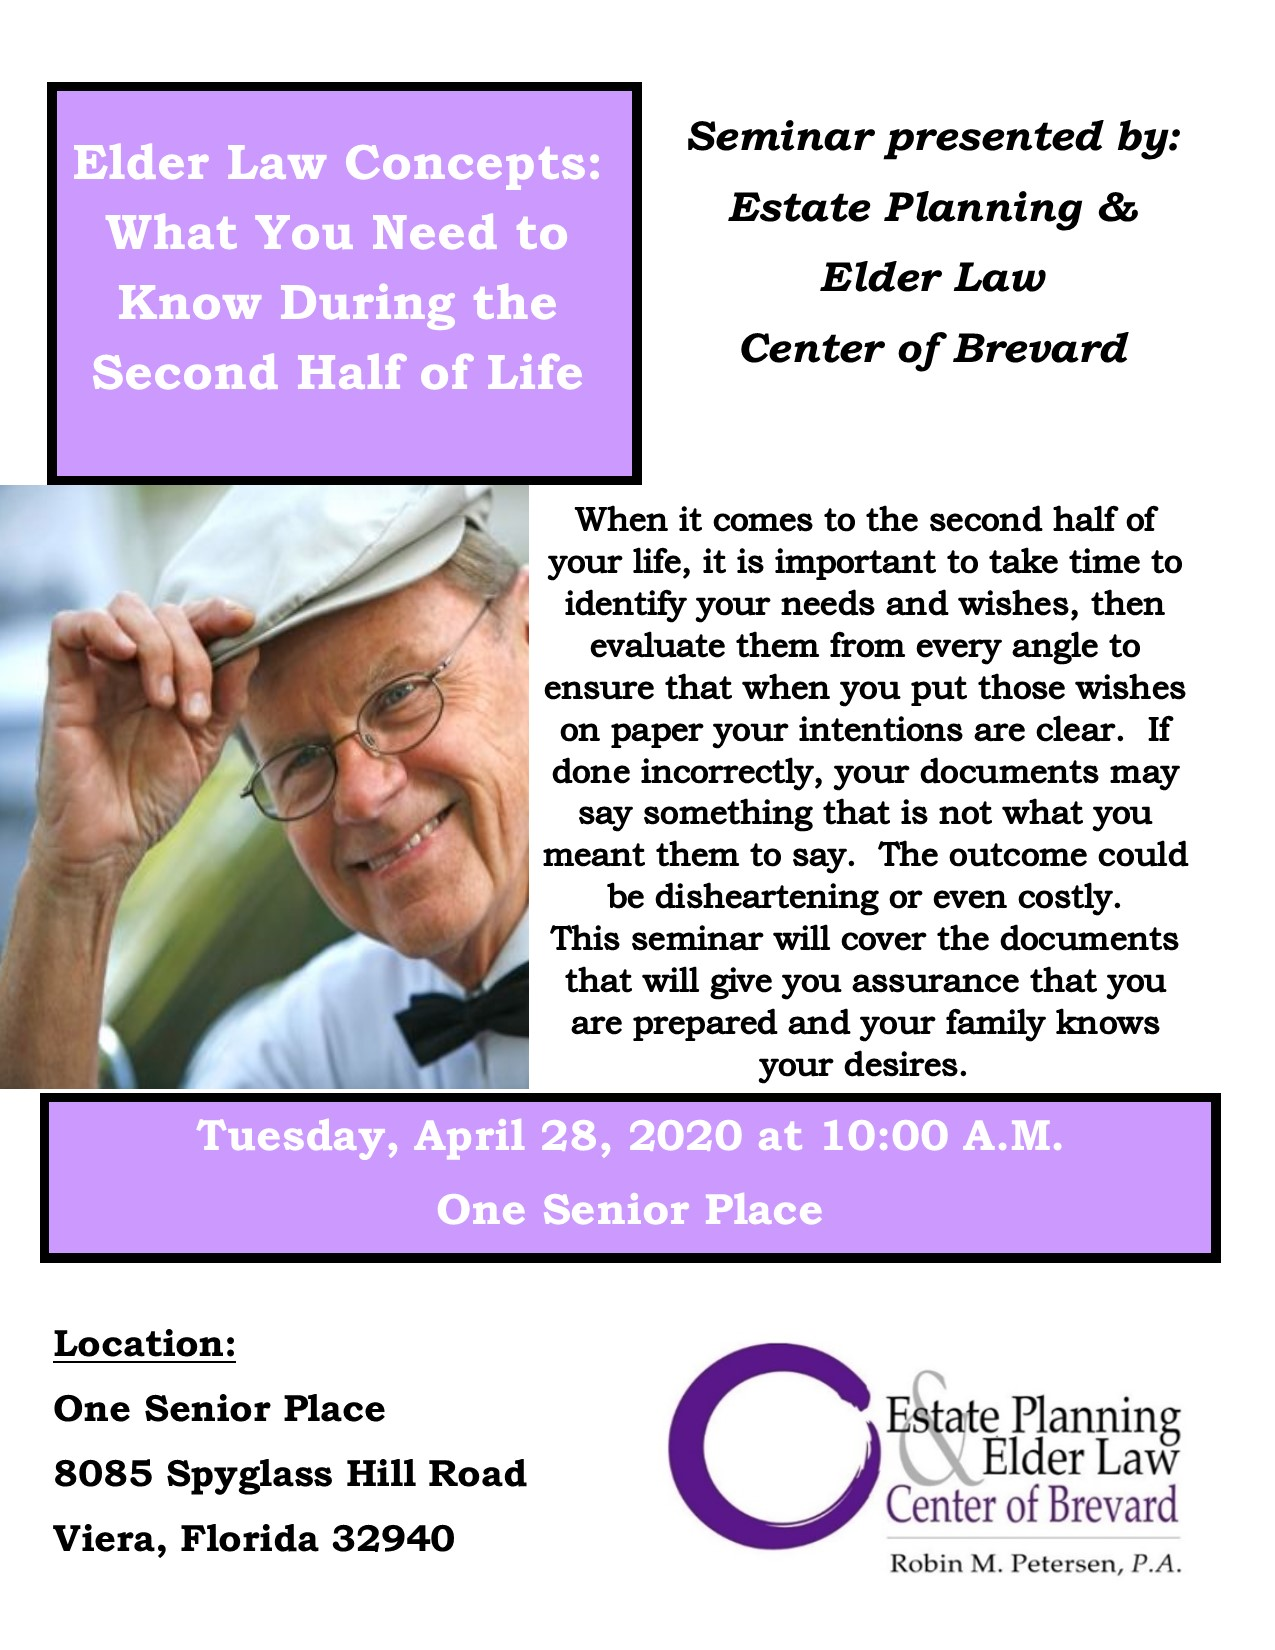 CANCELLED - Elder Law Concepts: What You Need to Know During the Second Half of Life presented by Estate Planning and Elder Law Center of Brevard